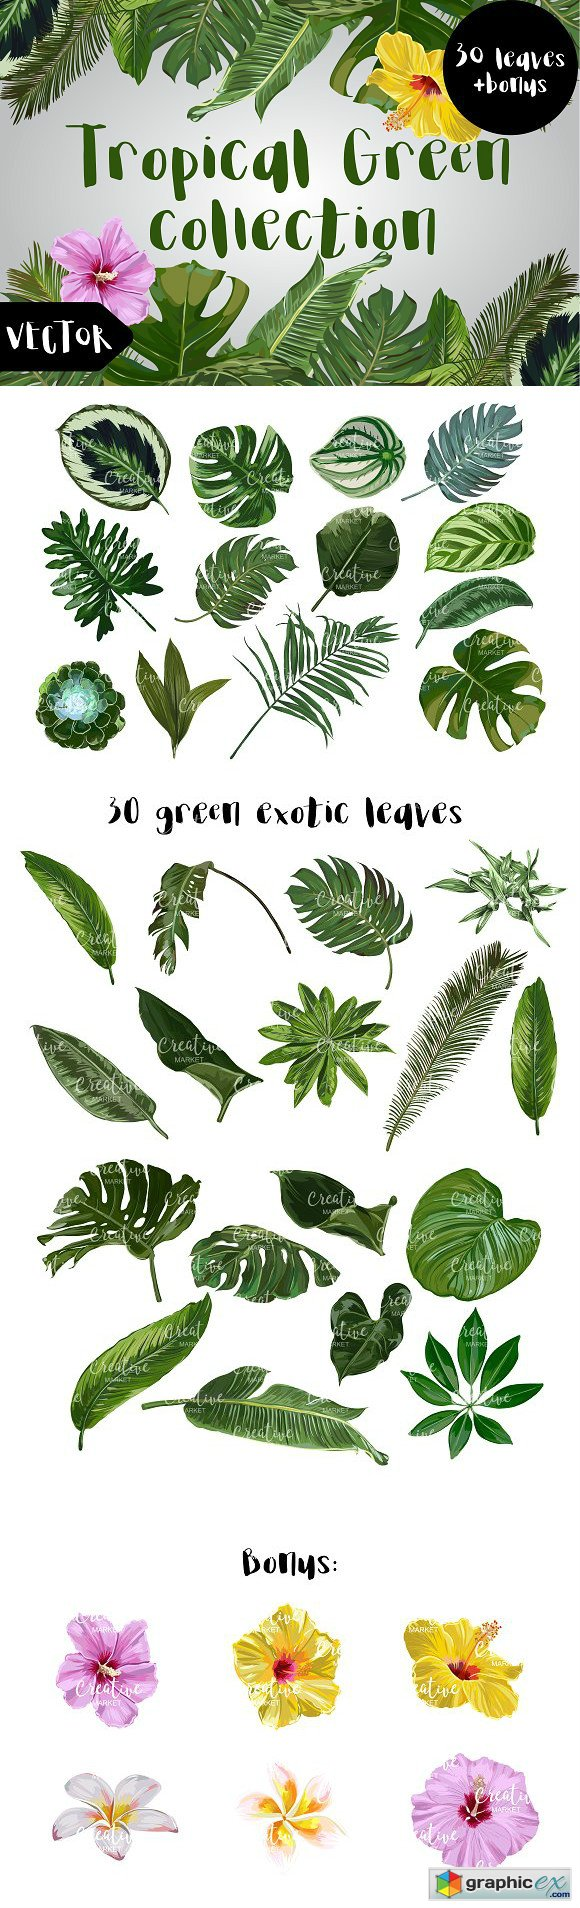 Tropical Green Vector Collection